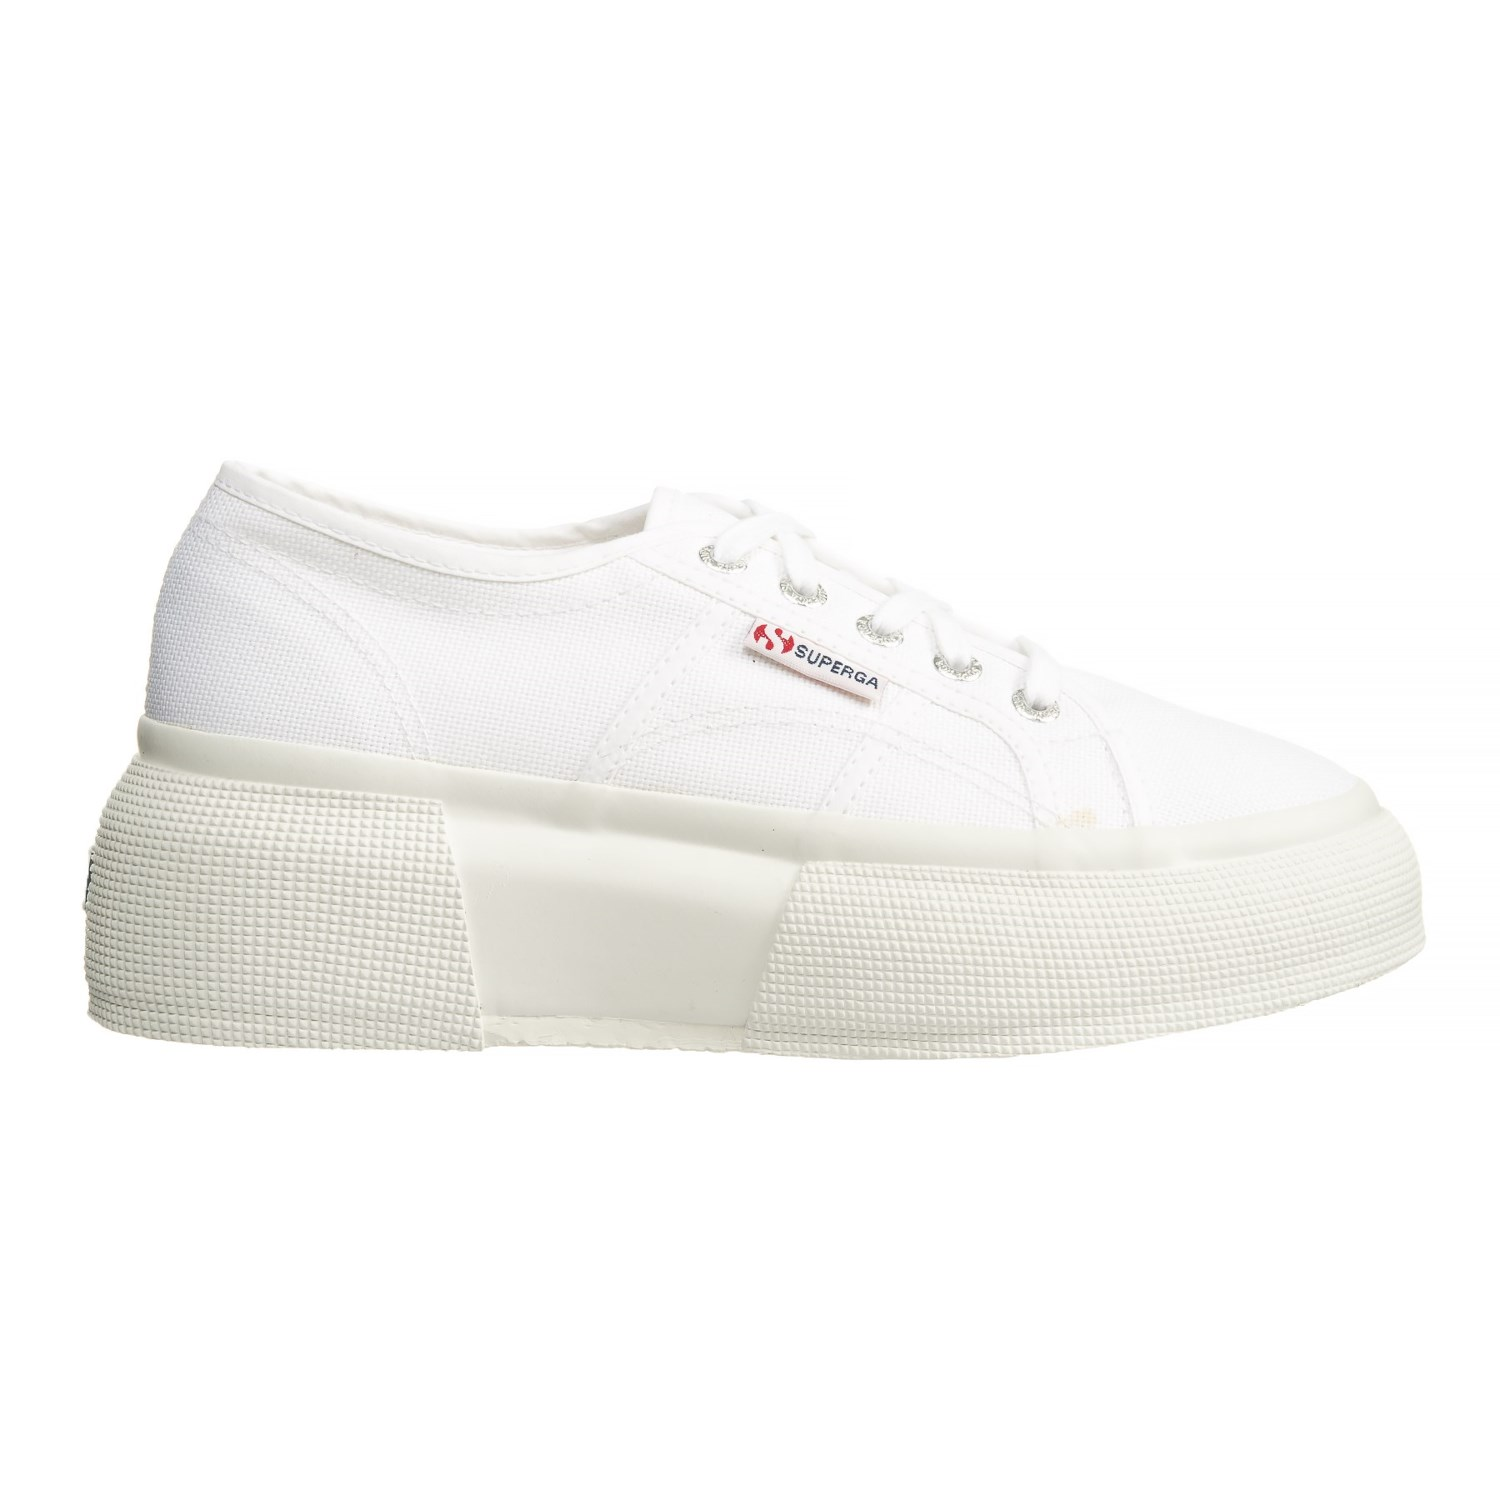 Superga Women's Sneakers Basic Canvas Sneakers White